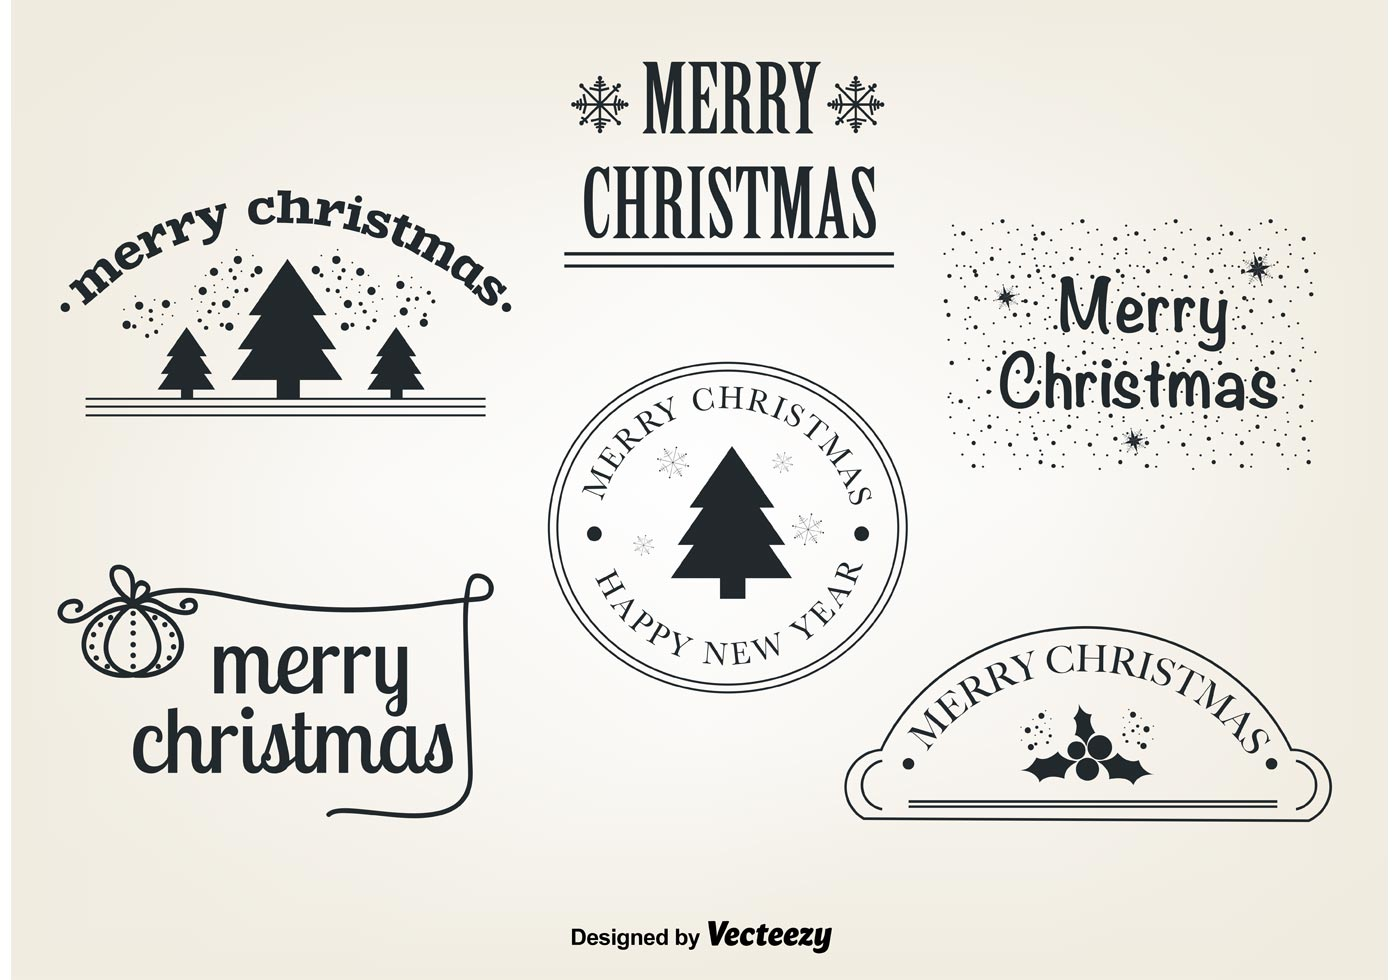 Free Christmas Vector Elements - Download Free Vector Art, Stock ...